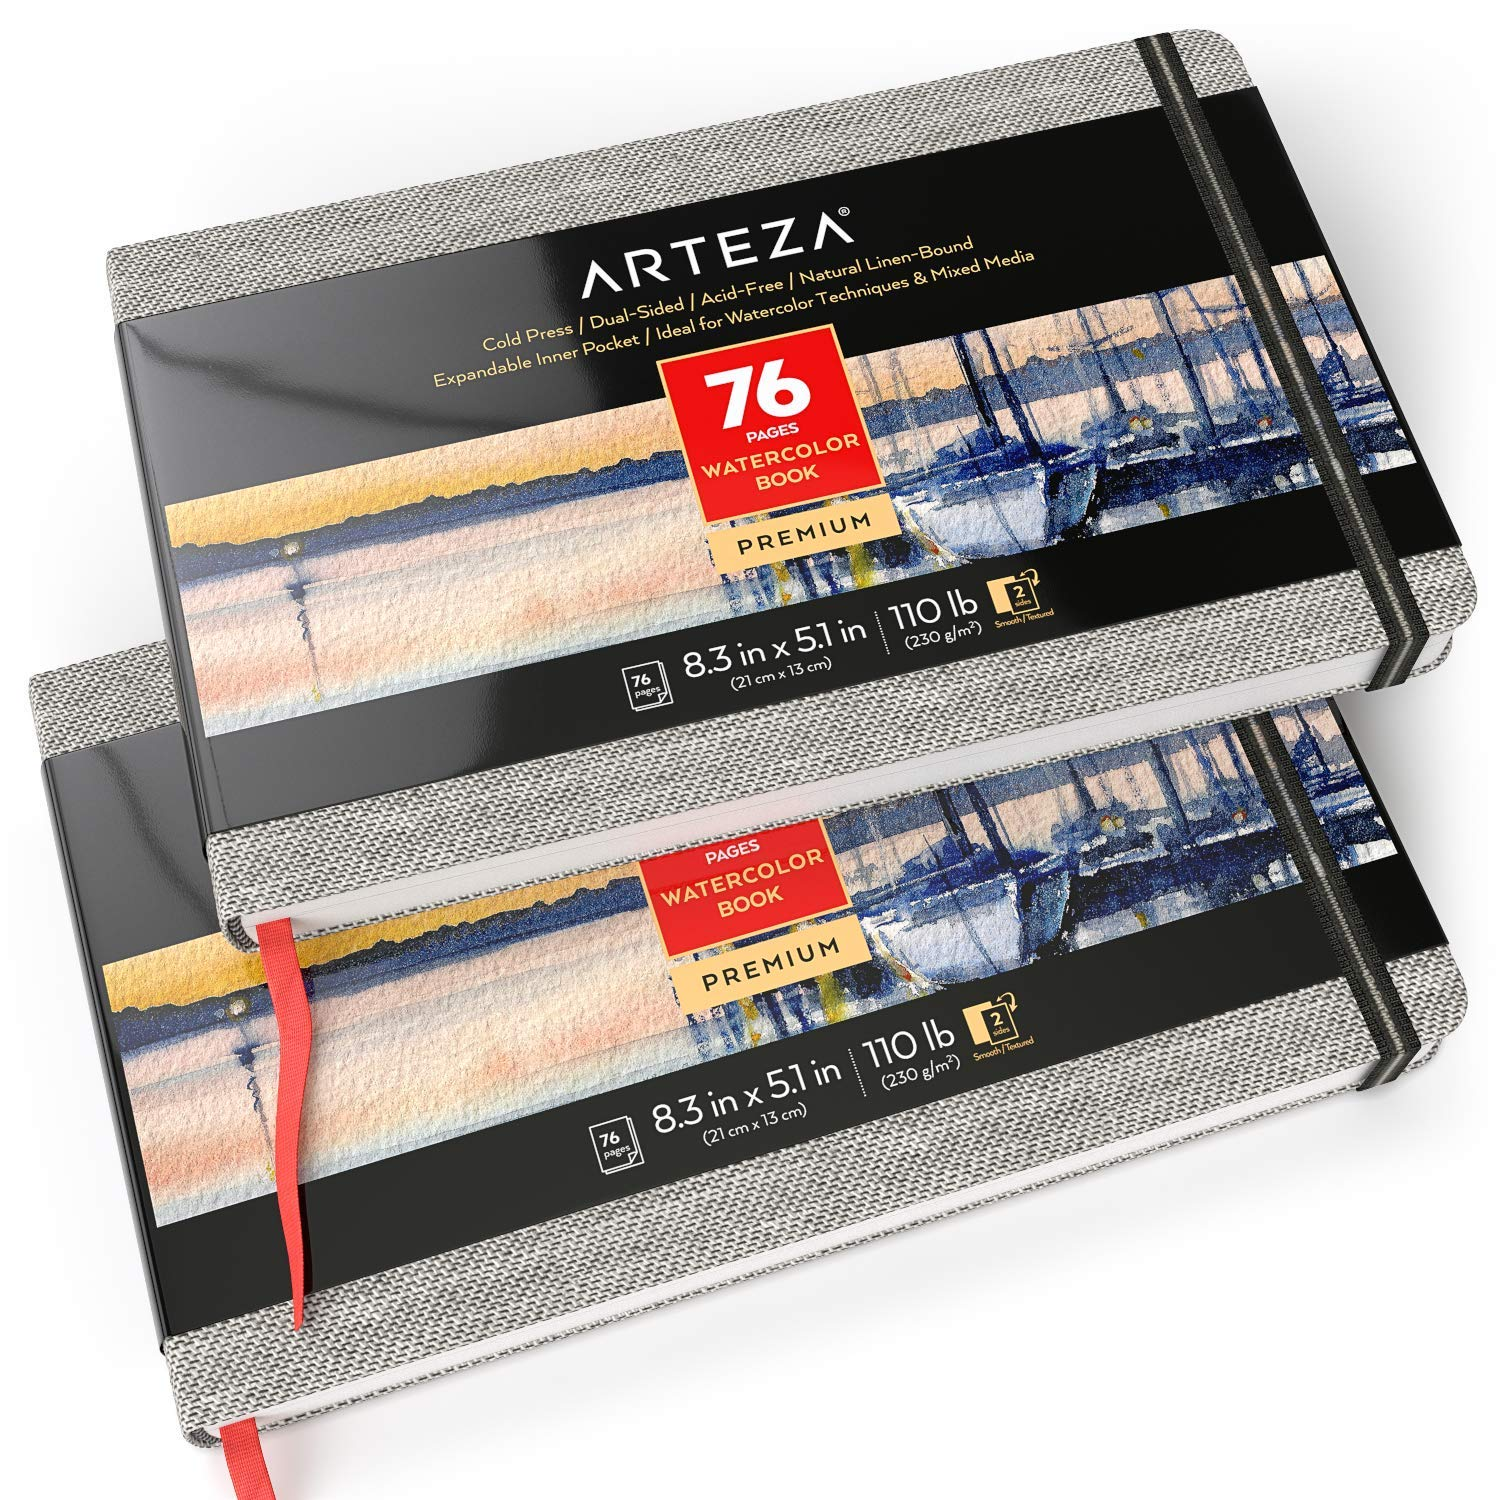 ARTEZA 5.1x8.3'' Watercolor Book, Pack of 2, 76 Pages per Pad, 110lb/230gsm, Cold Pressed Paper, Linen Bound with Bookmark Ribbon and Elastic Strap, for Watercolor Techniques and Mixed Media by ARTEZA